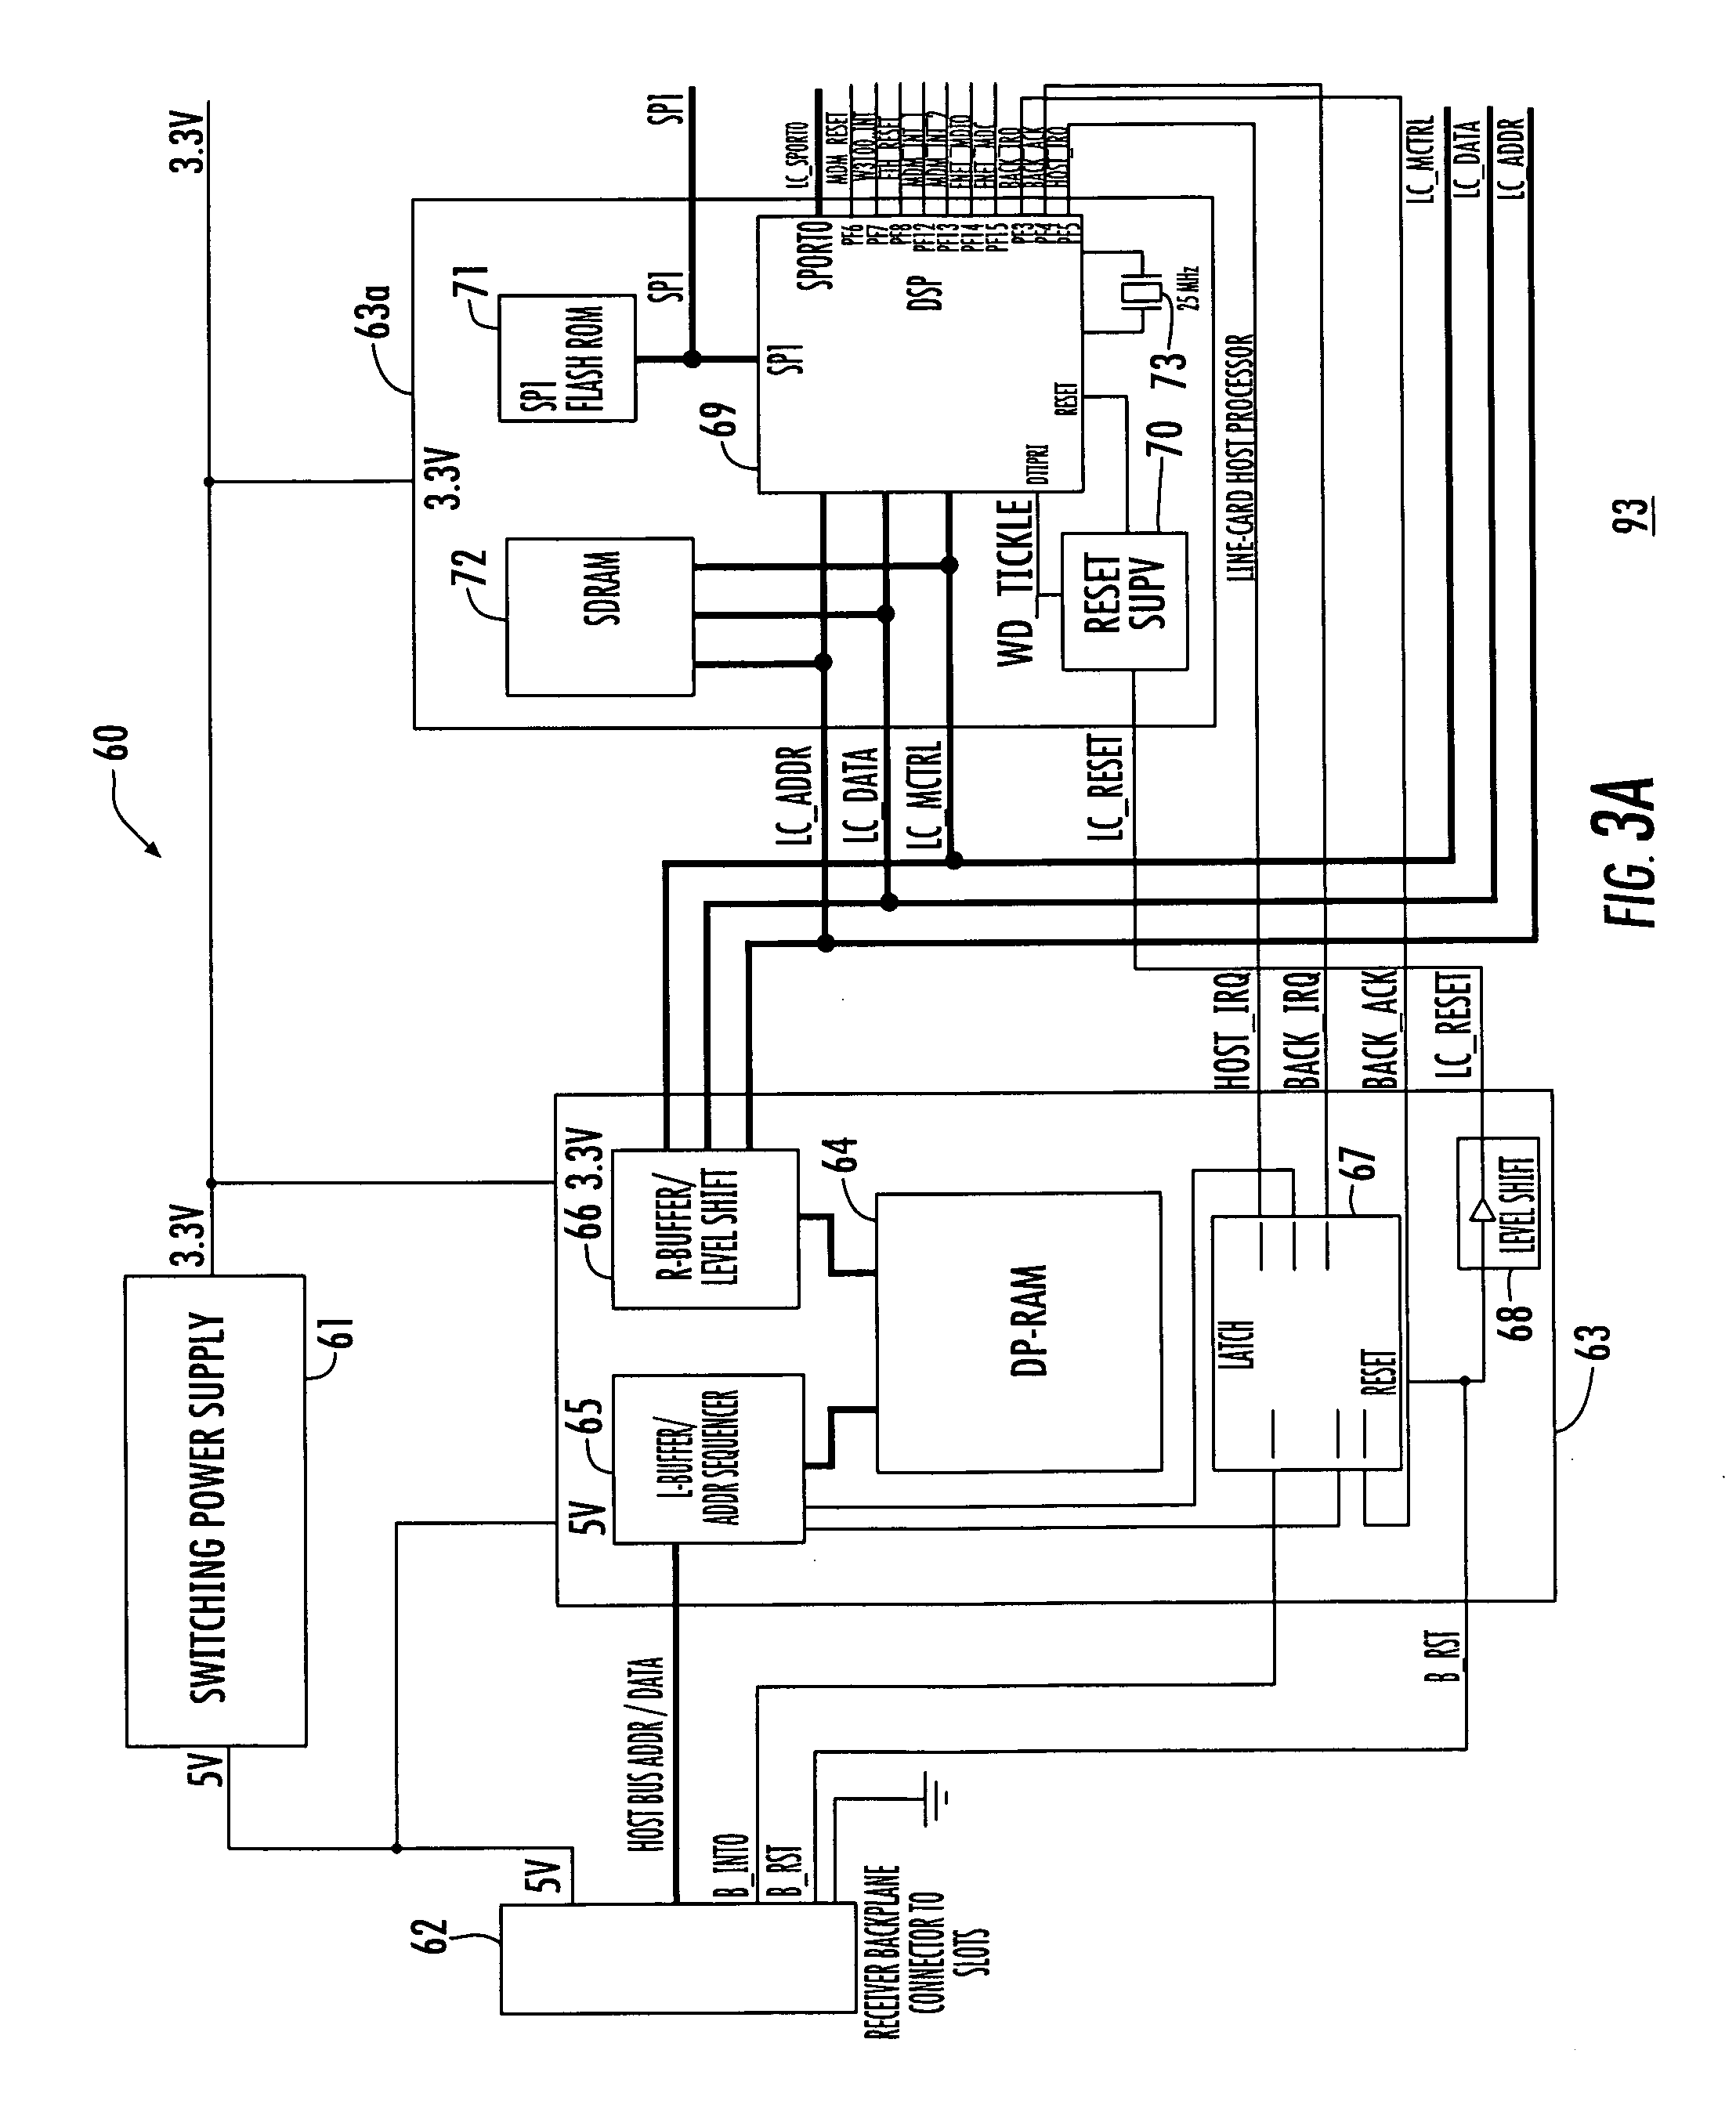 US20090058630A1 20090305 D00004?resize\\\\\\\=665%2C814 goodman sequencer wiring diagram fan carrier heat pump schematic electric furnace sequencer wiring diagram at mifinder.co